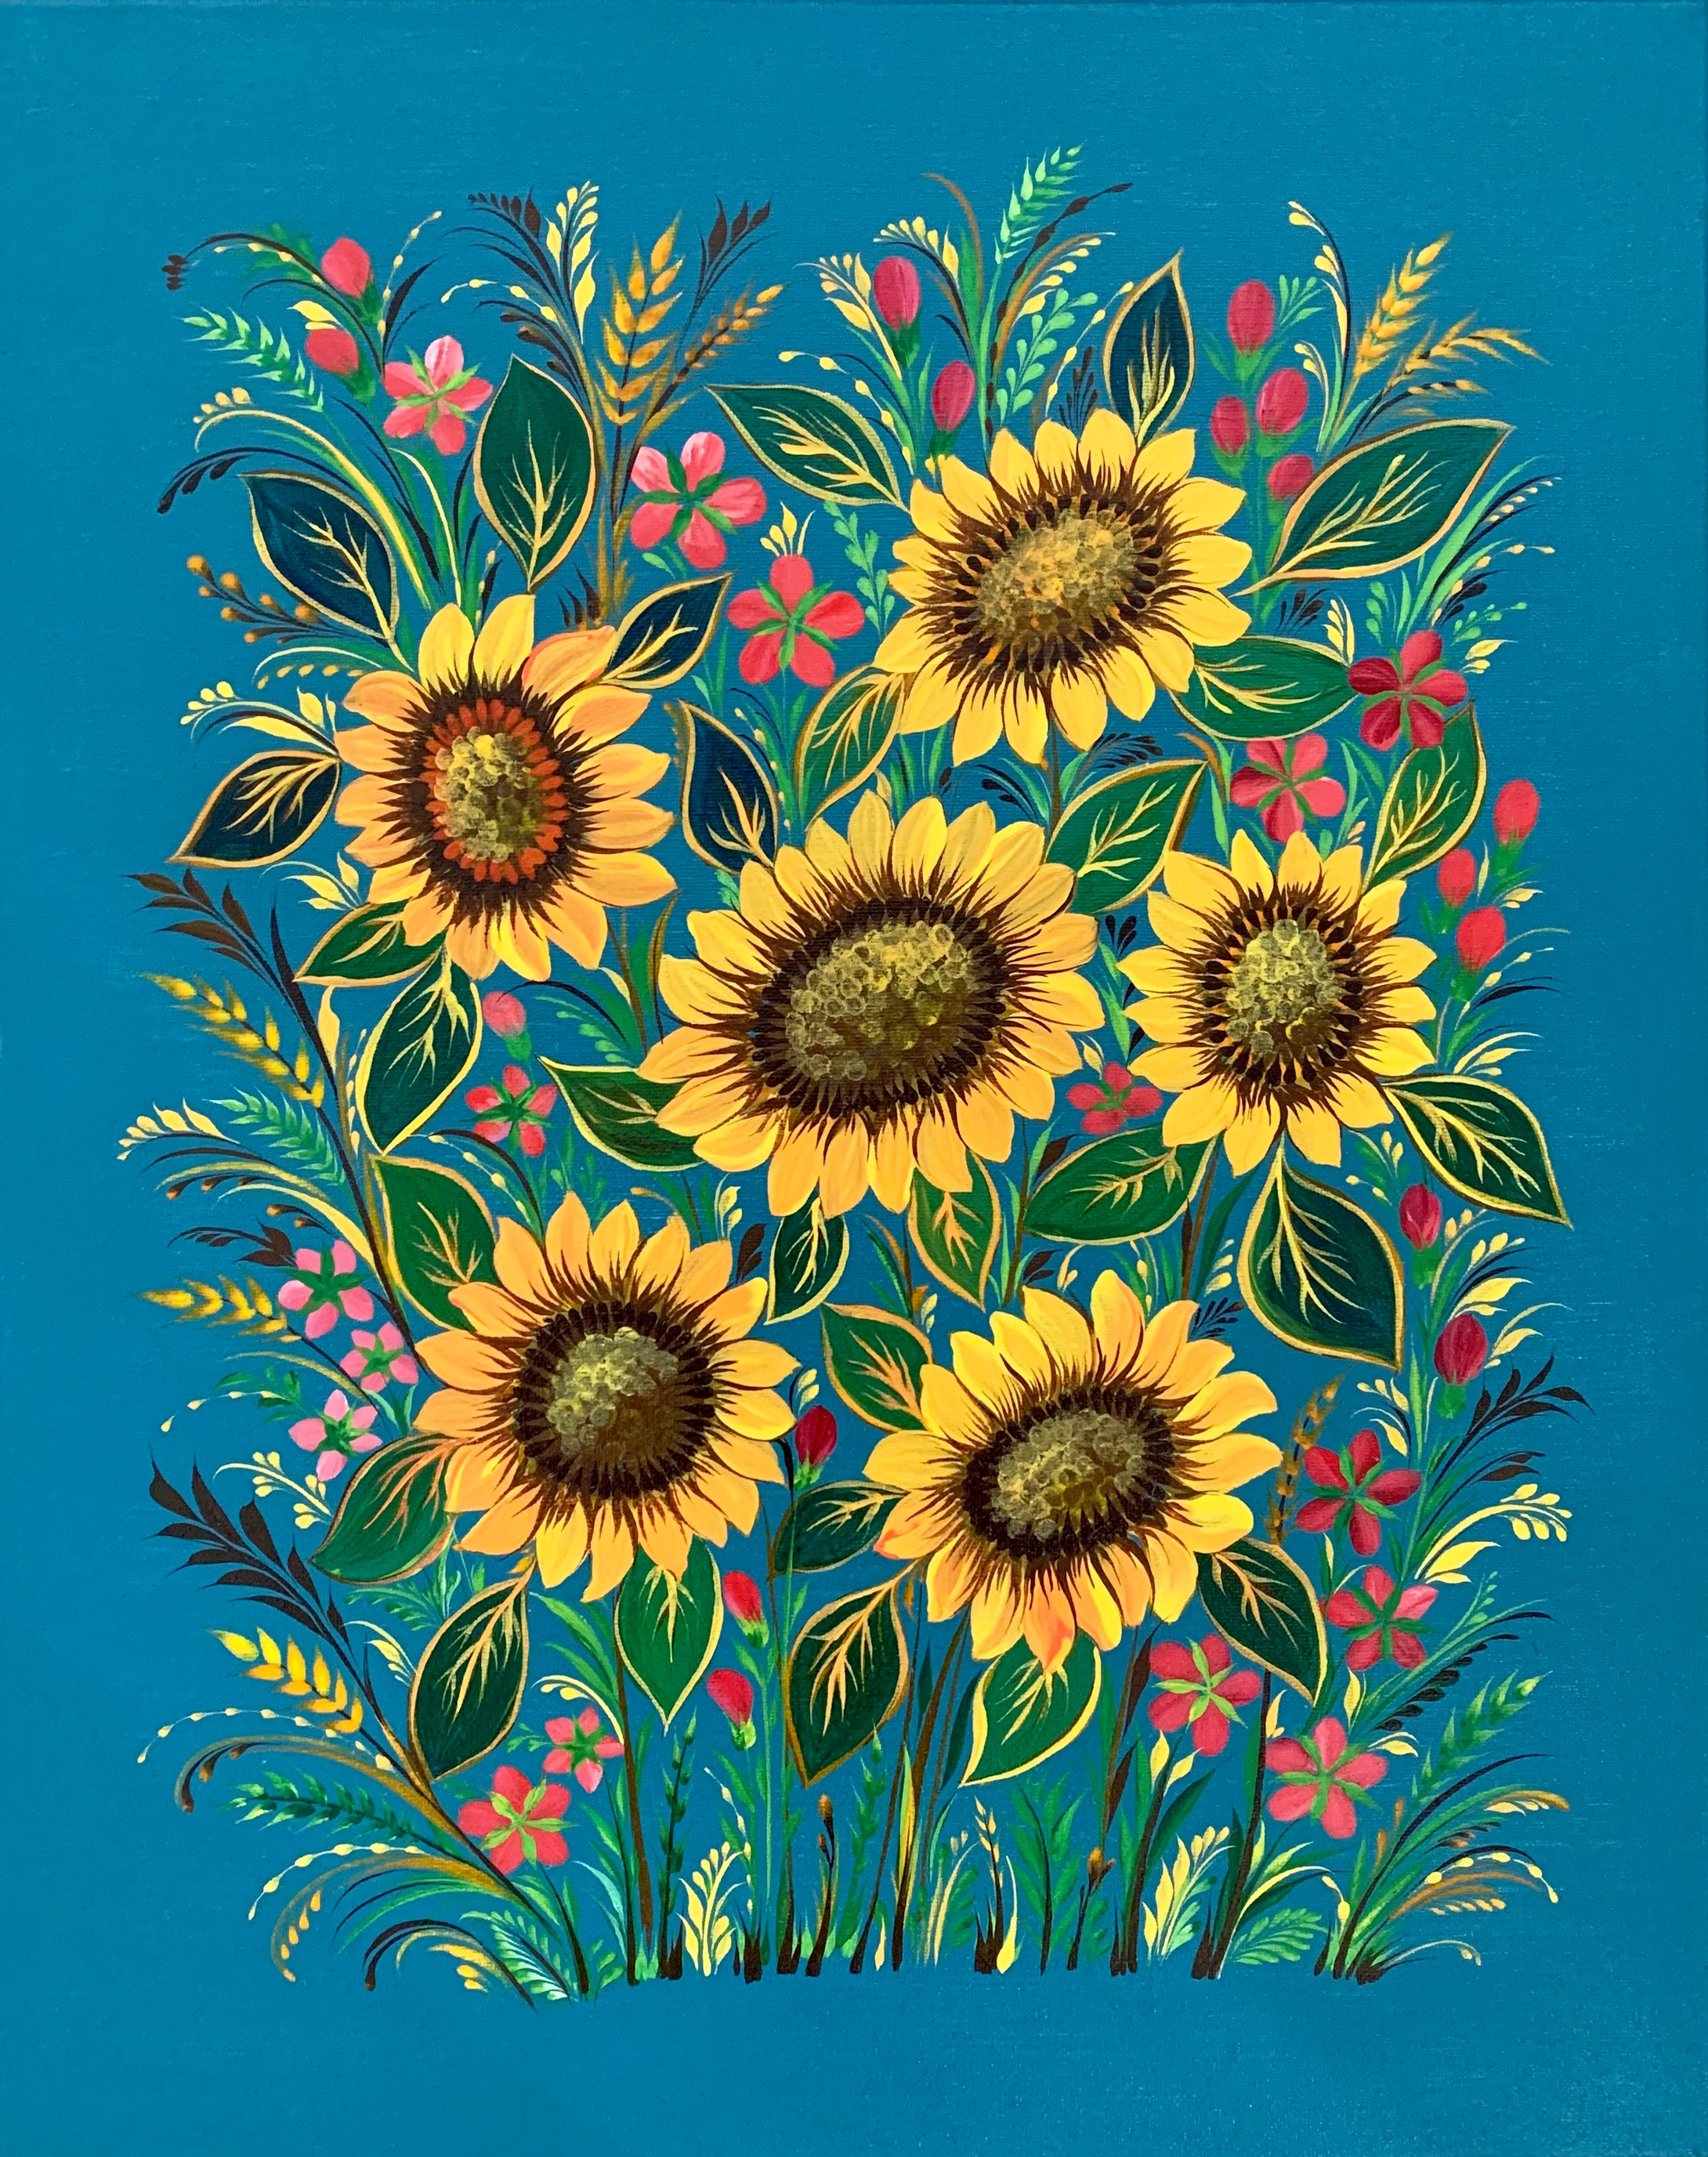 SUNFLOWERS -  16 in x 20 in (40.6 cm x 50.8 cm)